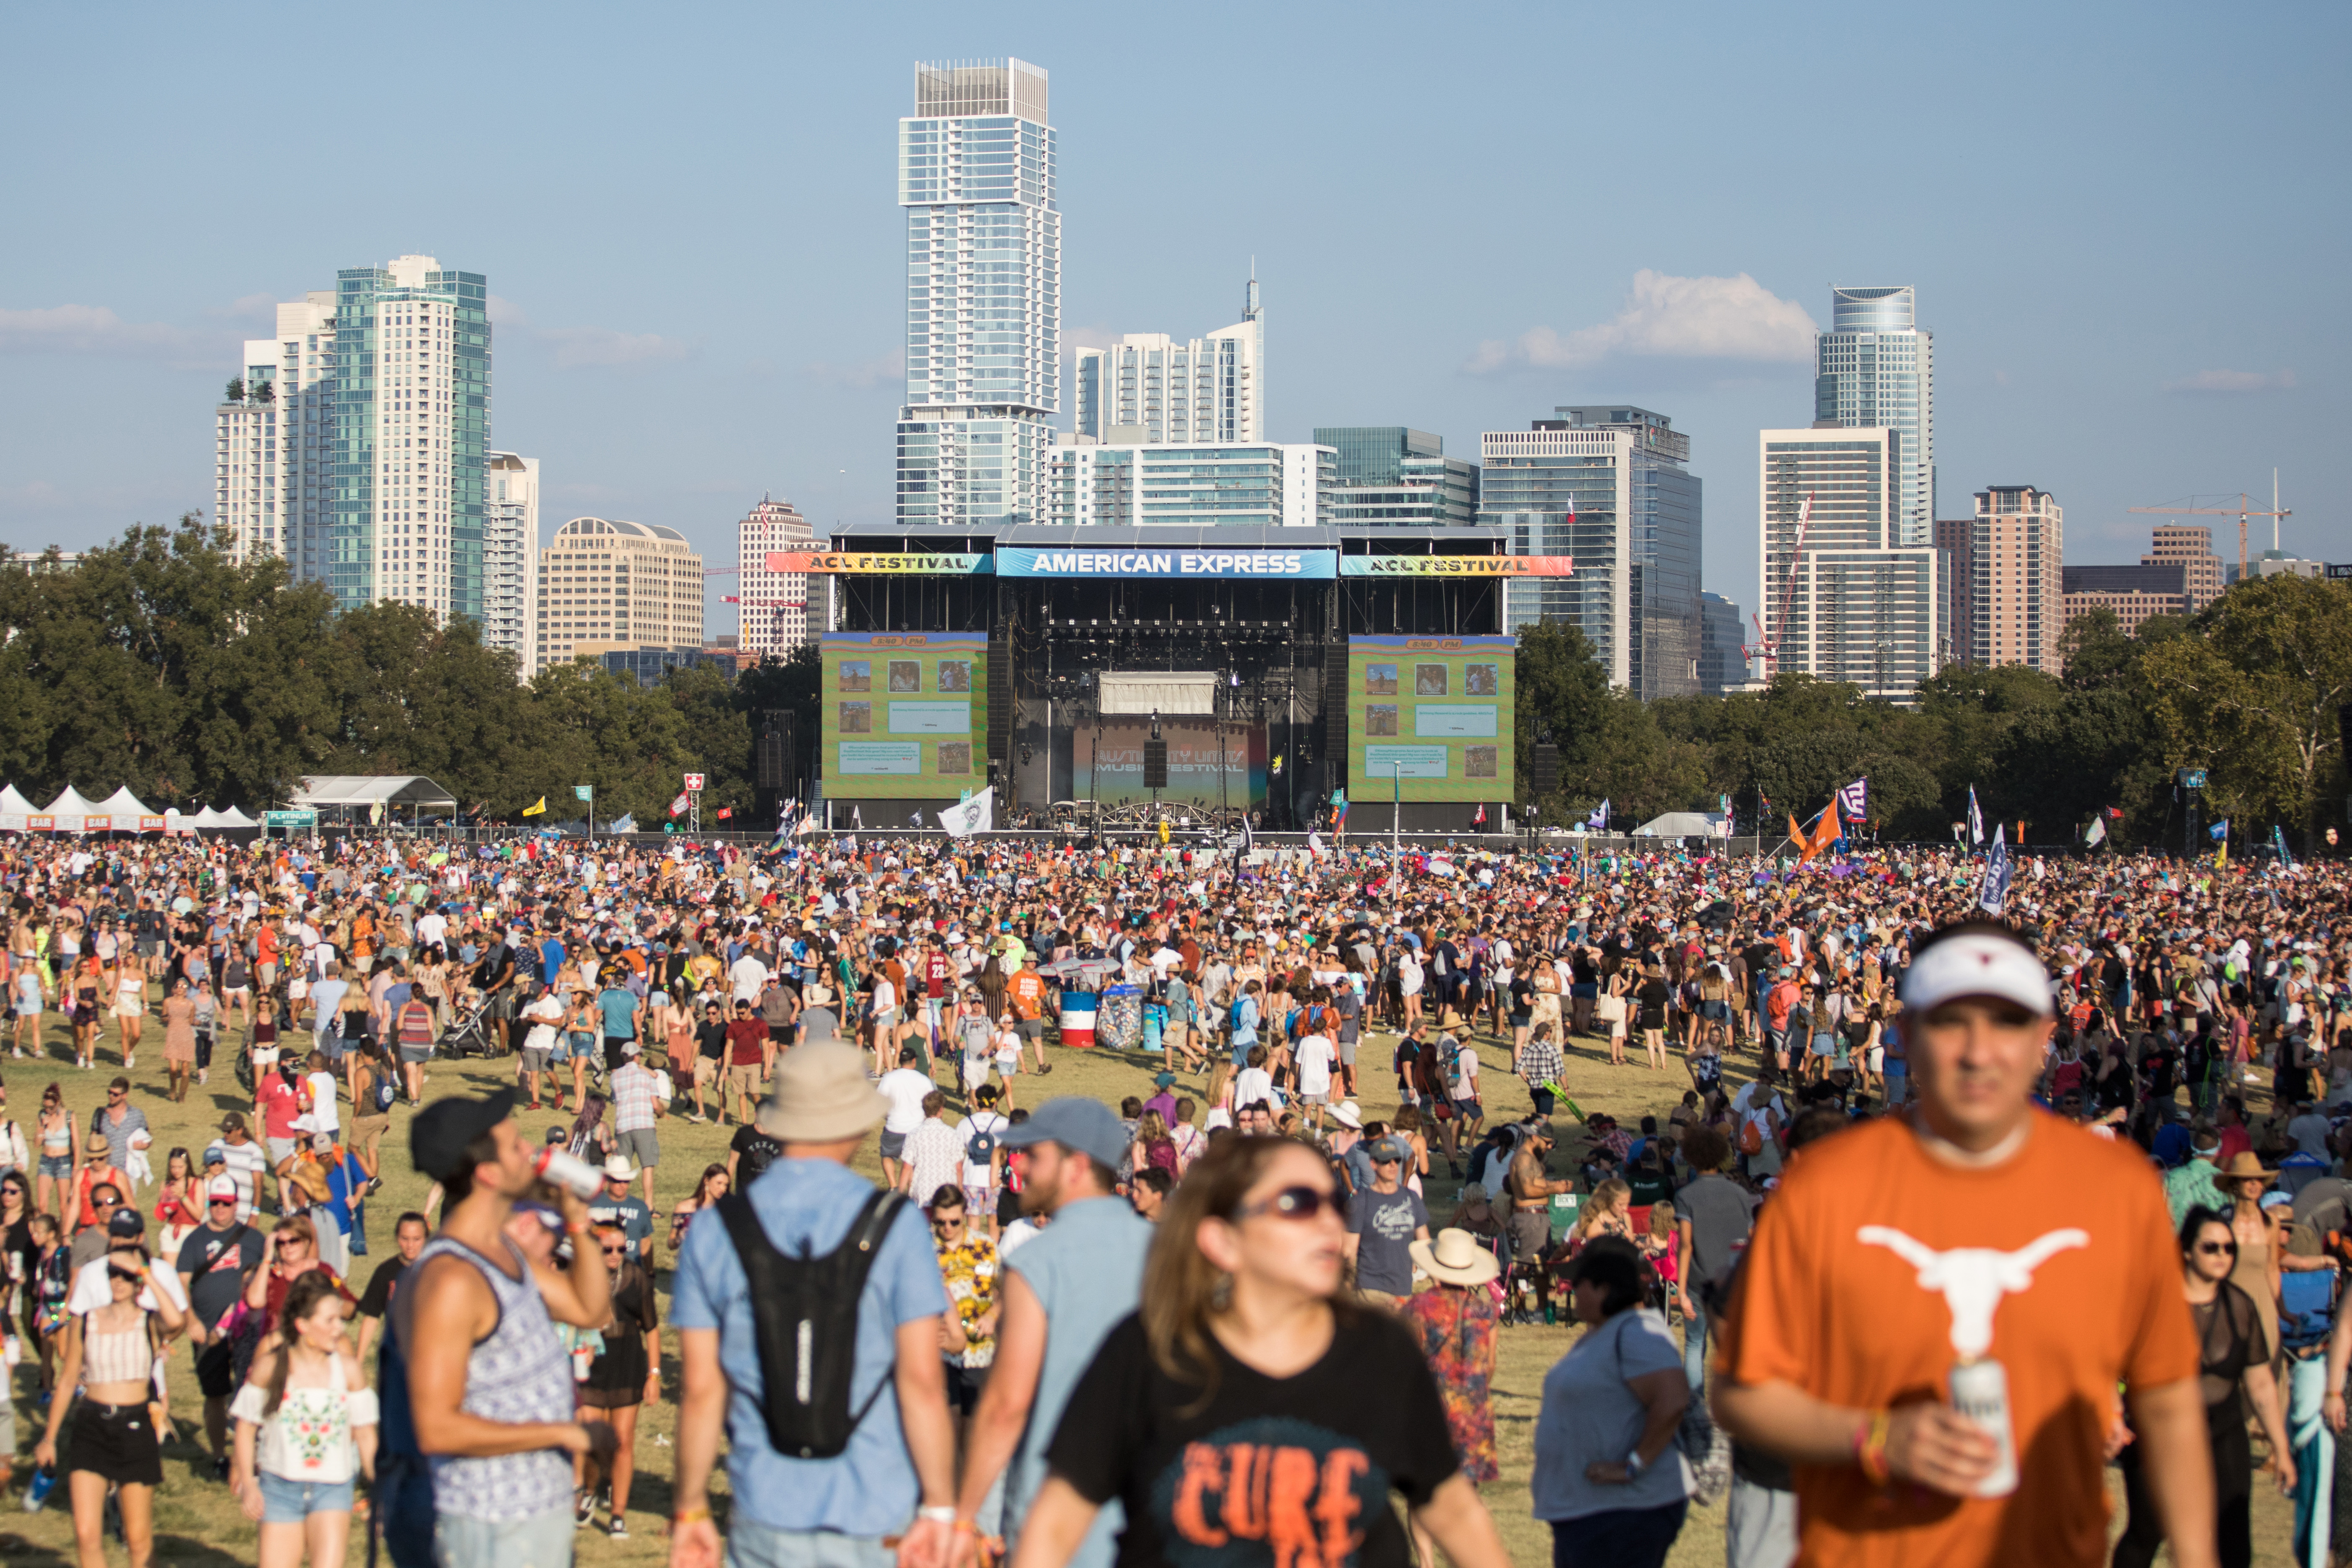 Thousands of concert-goers fill a field in front of an outdoor stage.